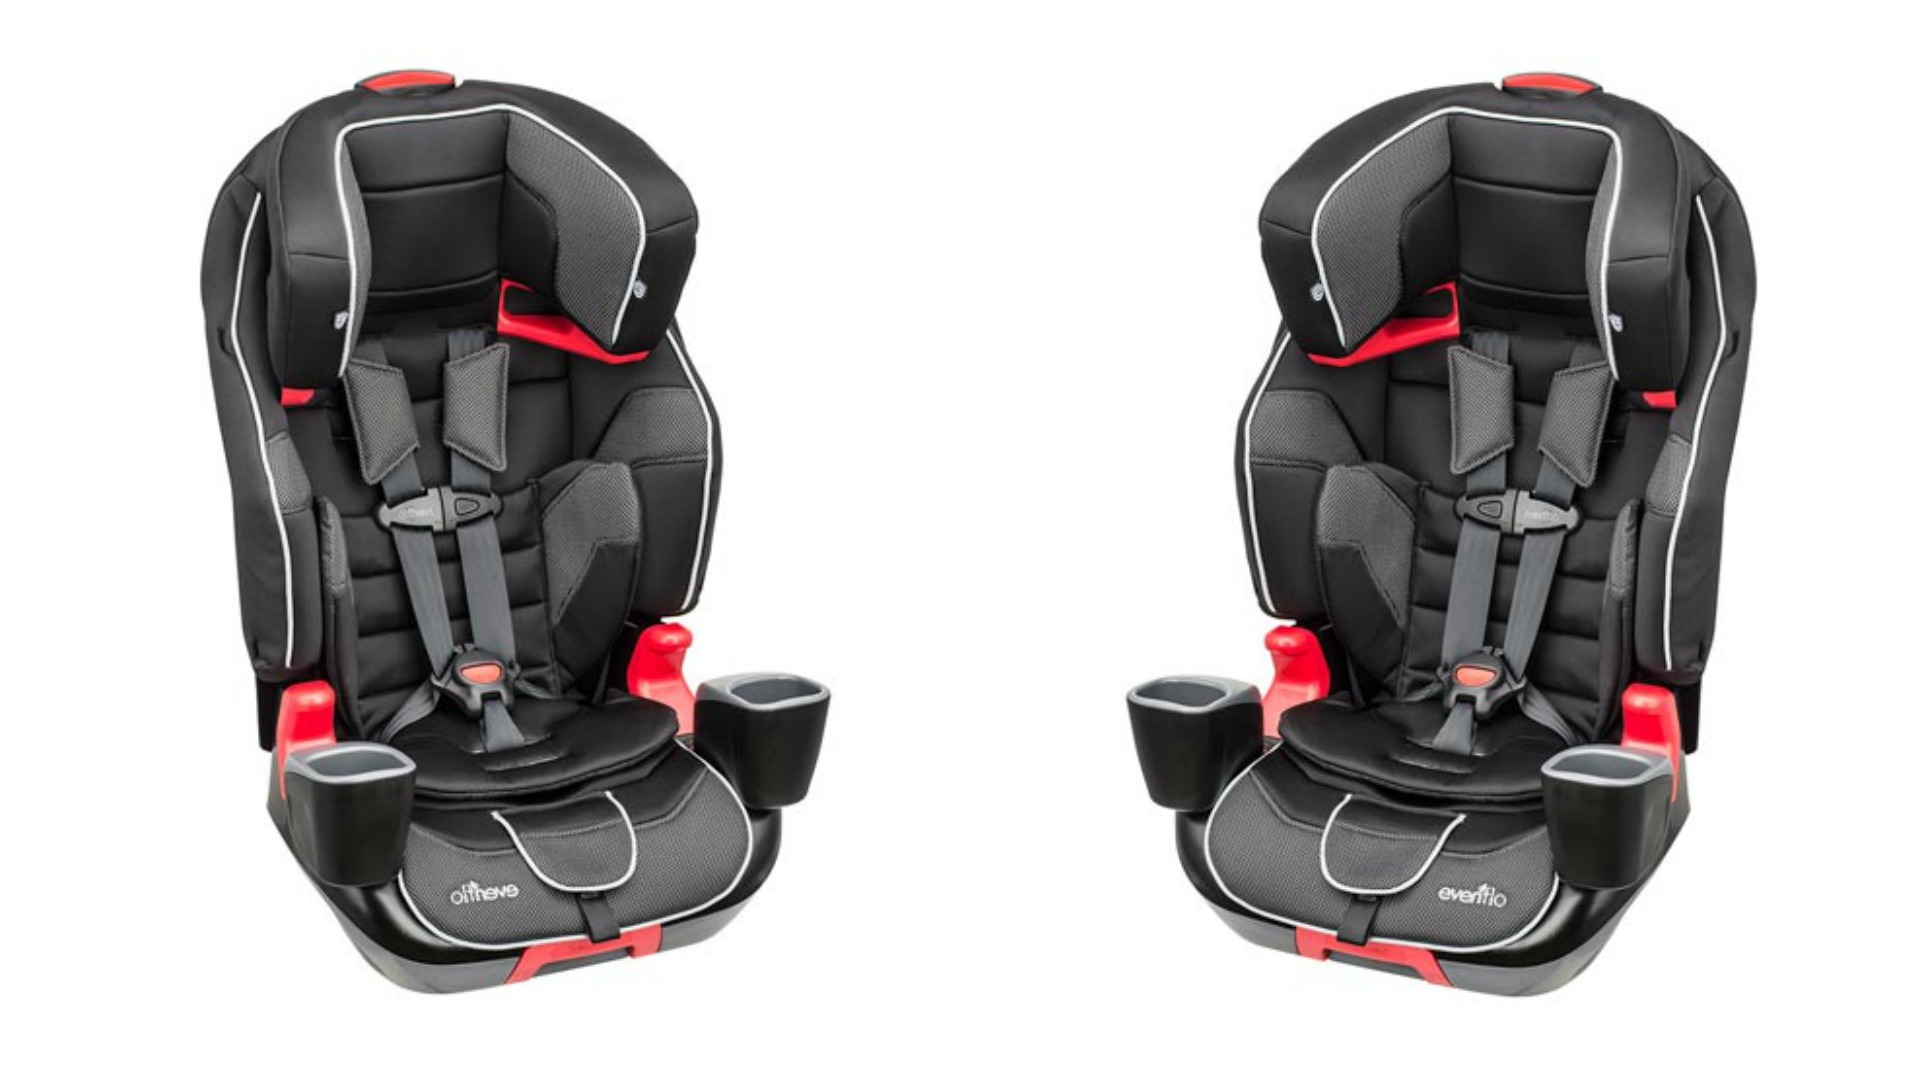 Evenflo Booster Seat Recall 5 Things Parents Need To Know SheKnows